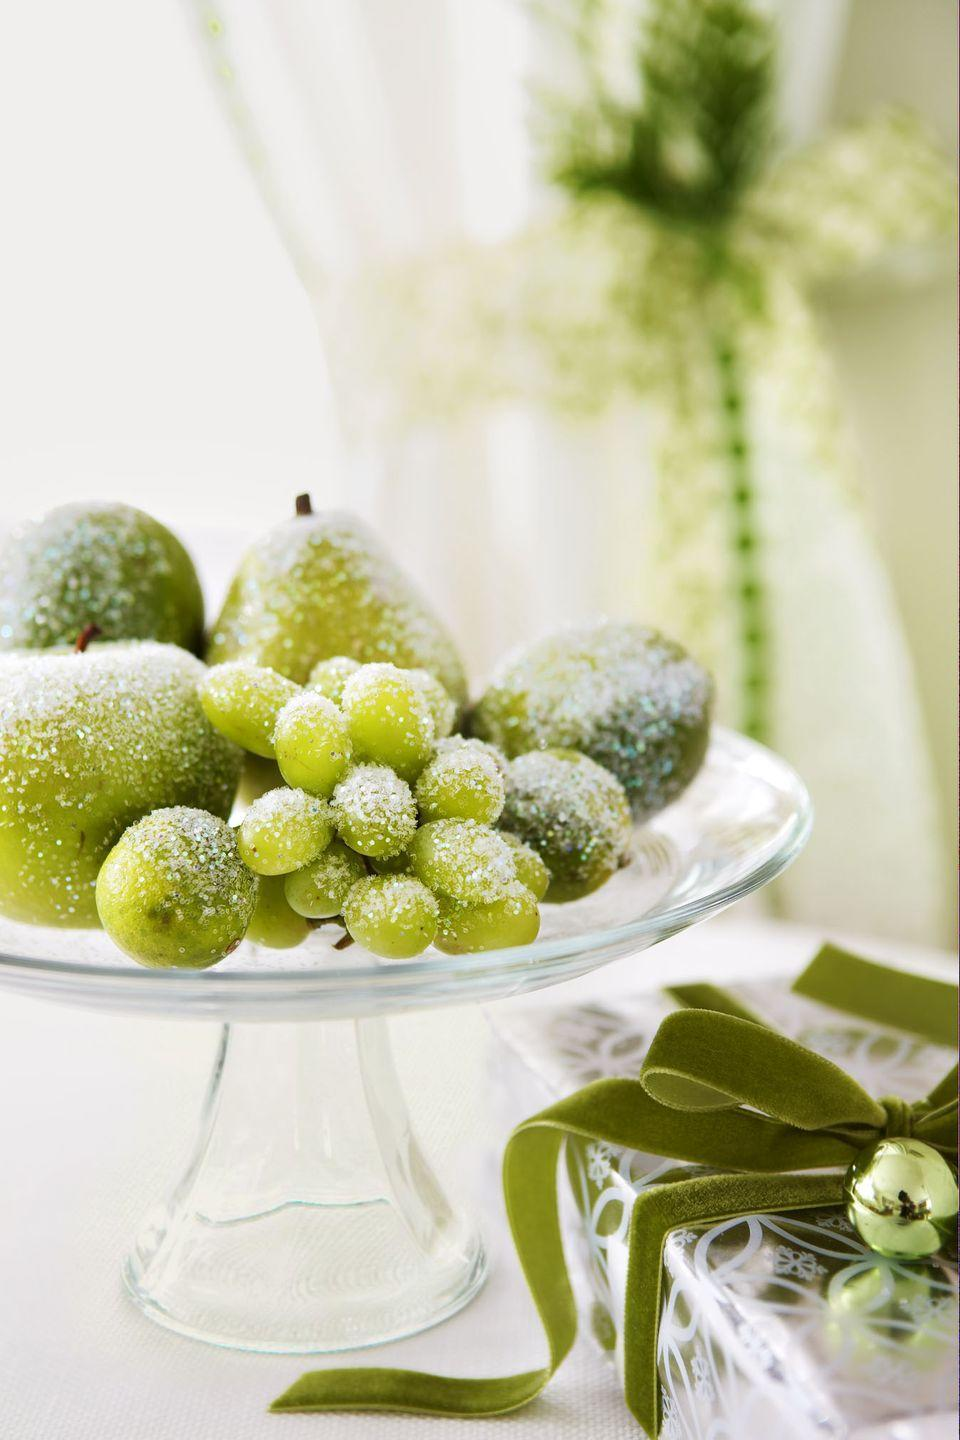 """<p>Faux grapes, limes, and pears dusted with glitter look plucked from Jack Frost's icy orchard — and will last for years. (To craft, coat fruit with spray adhesive and roll in a mixture of three parts white glitter to one part silver glitter.</p><p><span class=""""redactor-invisible-space""""><a class=""""link rapid-noclick-resp"""" href=""""https://www.amazon.com/Gresorth-Artificial-Lifelike-Simulation-Decoration/dp/B00MNBJ2EO/?tag=syn-yahoo-20&ascsubtag=%5Bartid%7C10055.g.2196%5Bsrc%7Cyahoo-us"""" rel=""""nofollow noopener"""" target=""""_blank"""" data-ylk=""""slk:SHOP FAUX PEARS"""">SHOP FAUX PEARS</a></span><br></p>"""